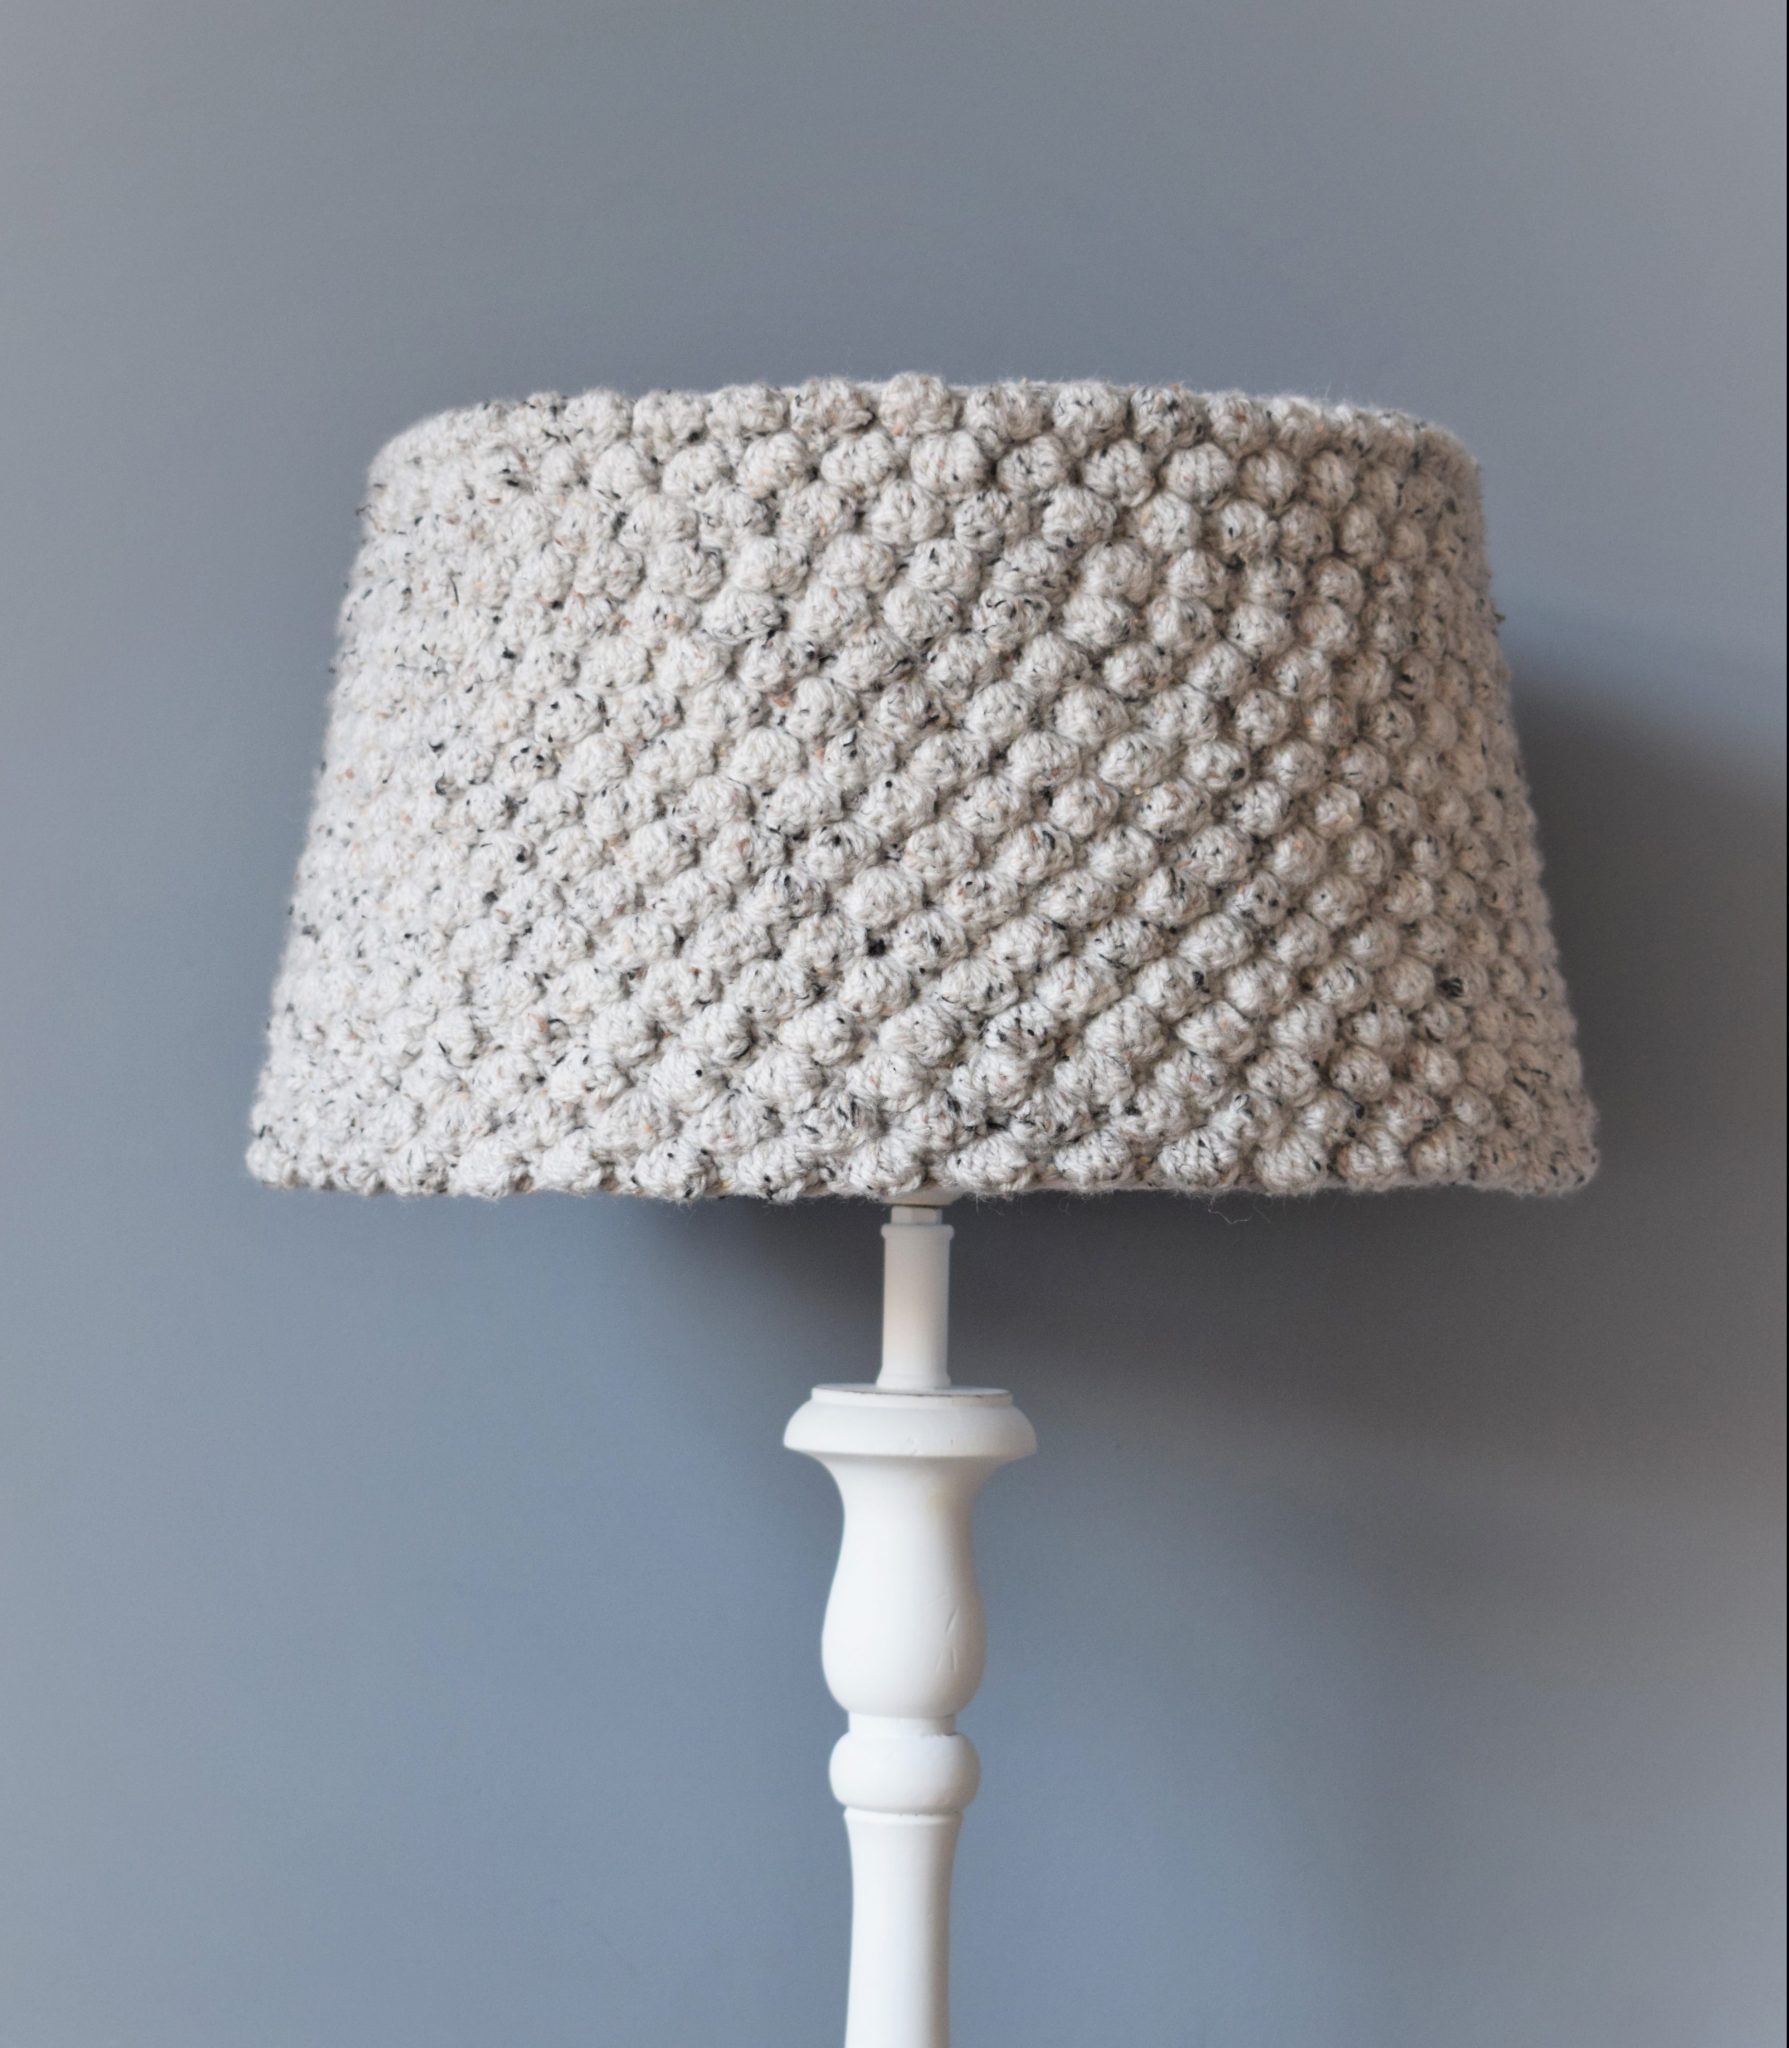 On the picture: Free crocheted pattern lampshade